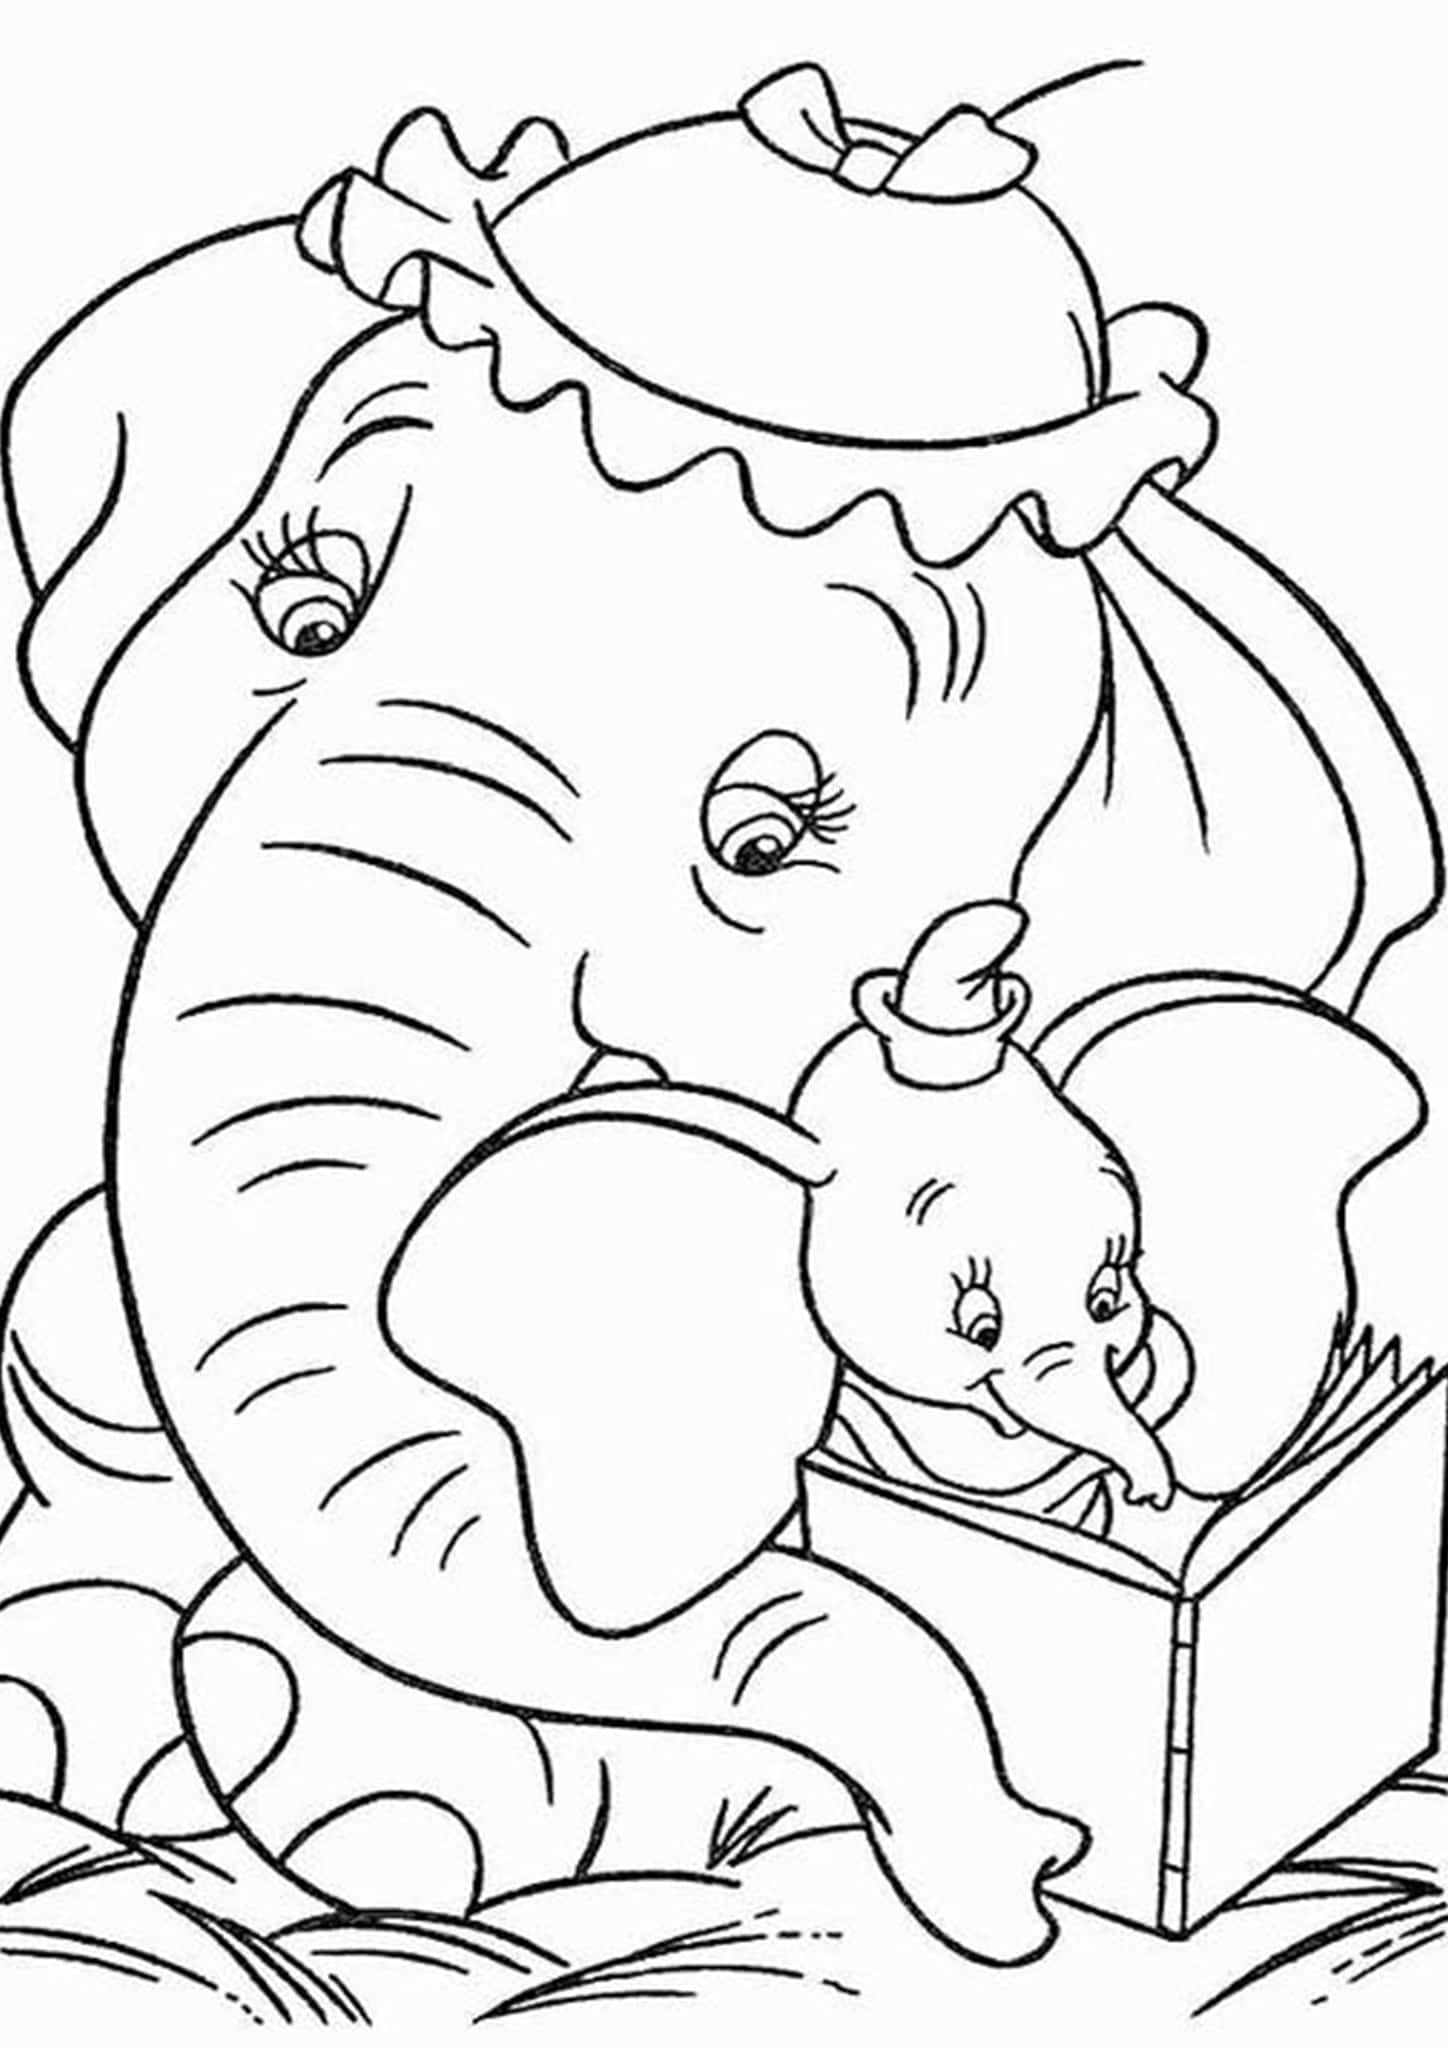 coloring pages of kawaii coloring pages to download and print for free pages of coloring